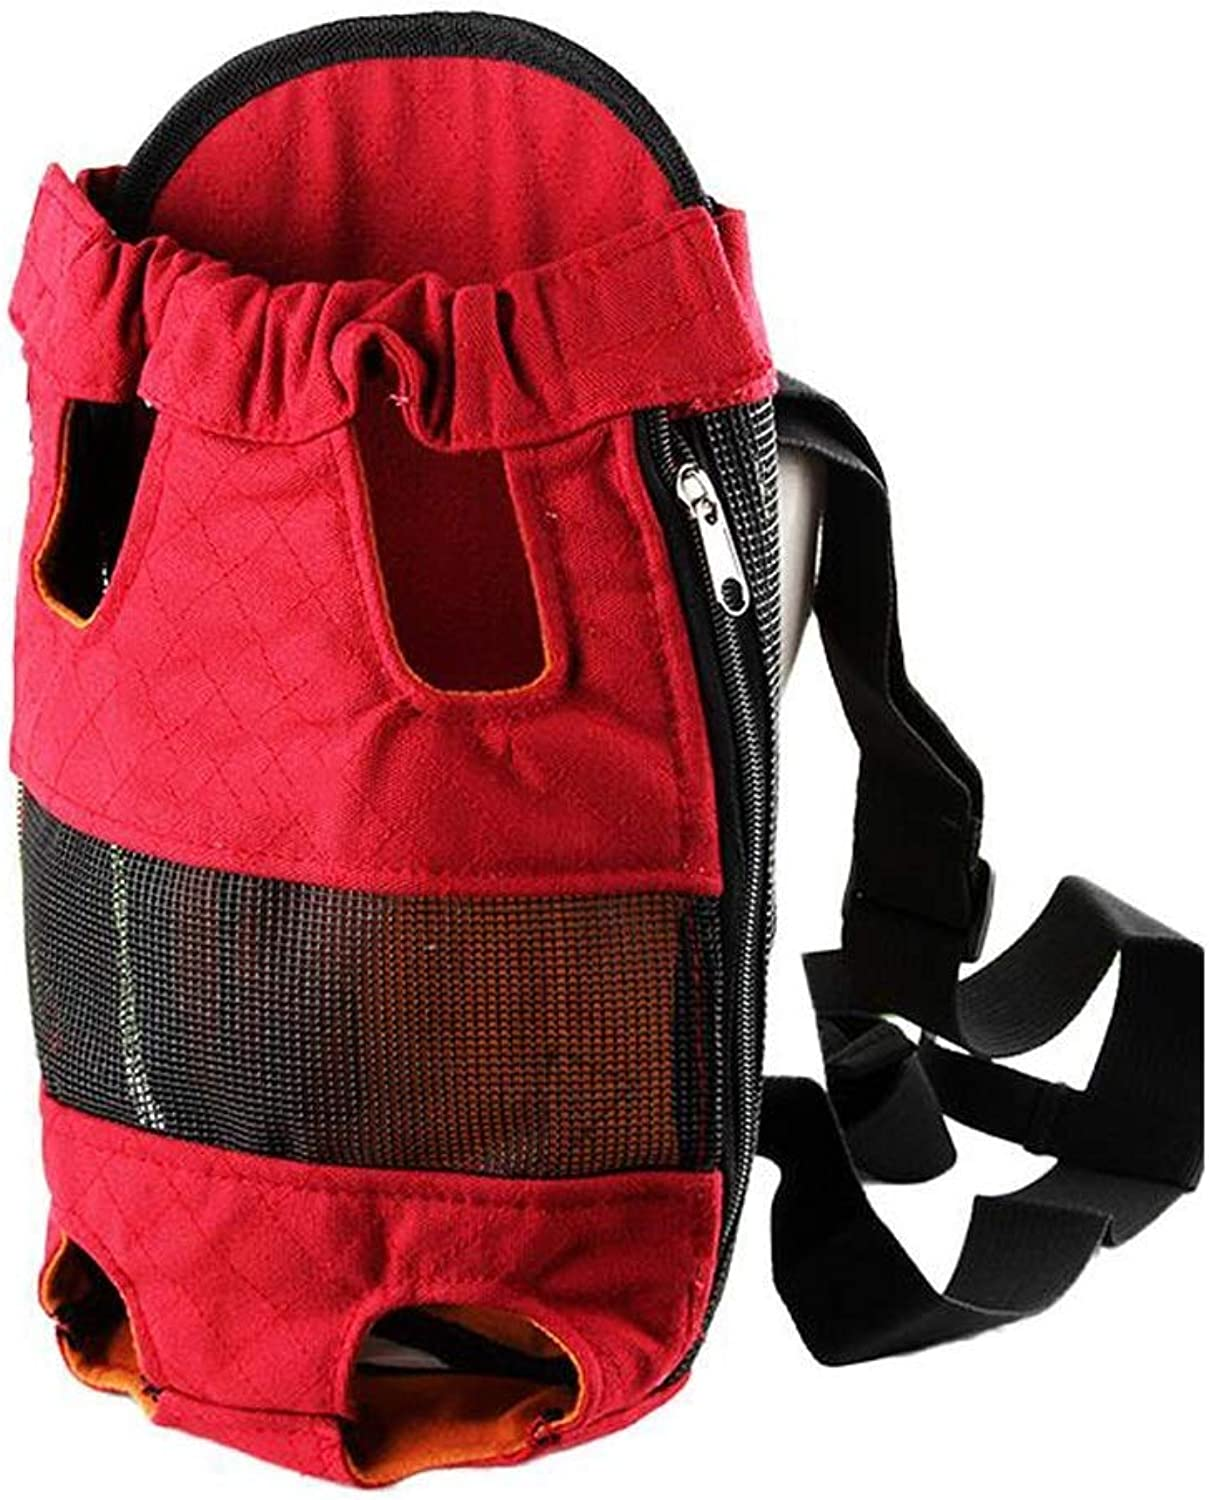 Pet Carrier Seat Dog Backpack Dog Bag Out Shoulders Teddy Pet Bag Dog Chest Bag Portable Pet Out Small Dog Rollsnownow Pet Carrier Crate